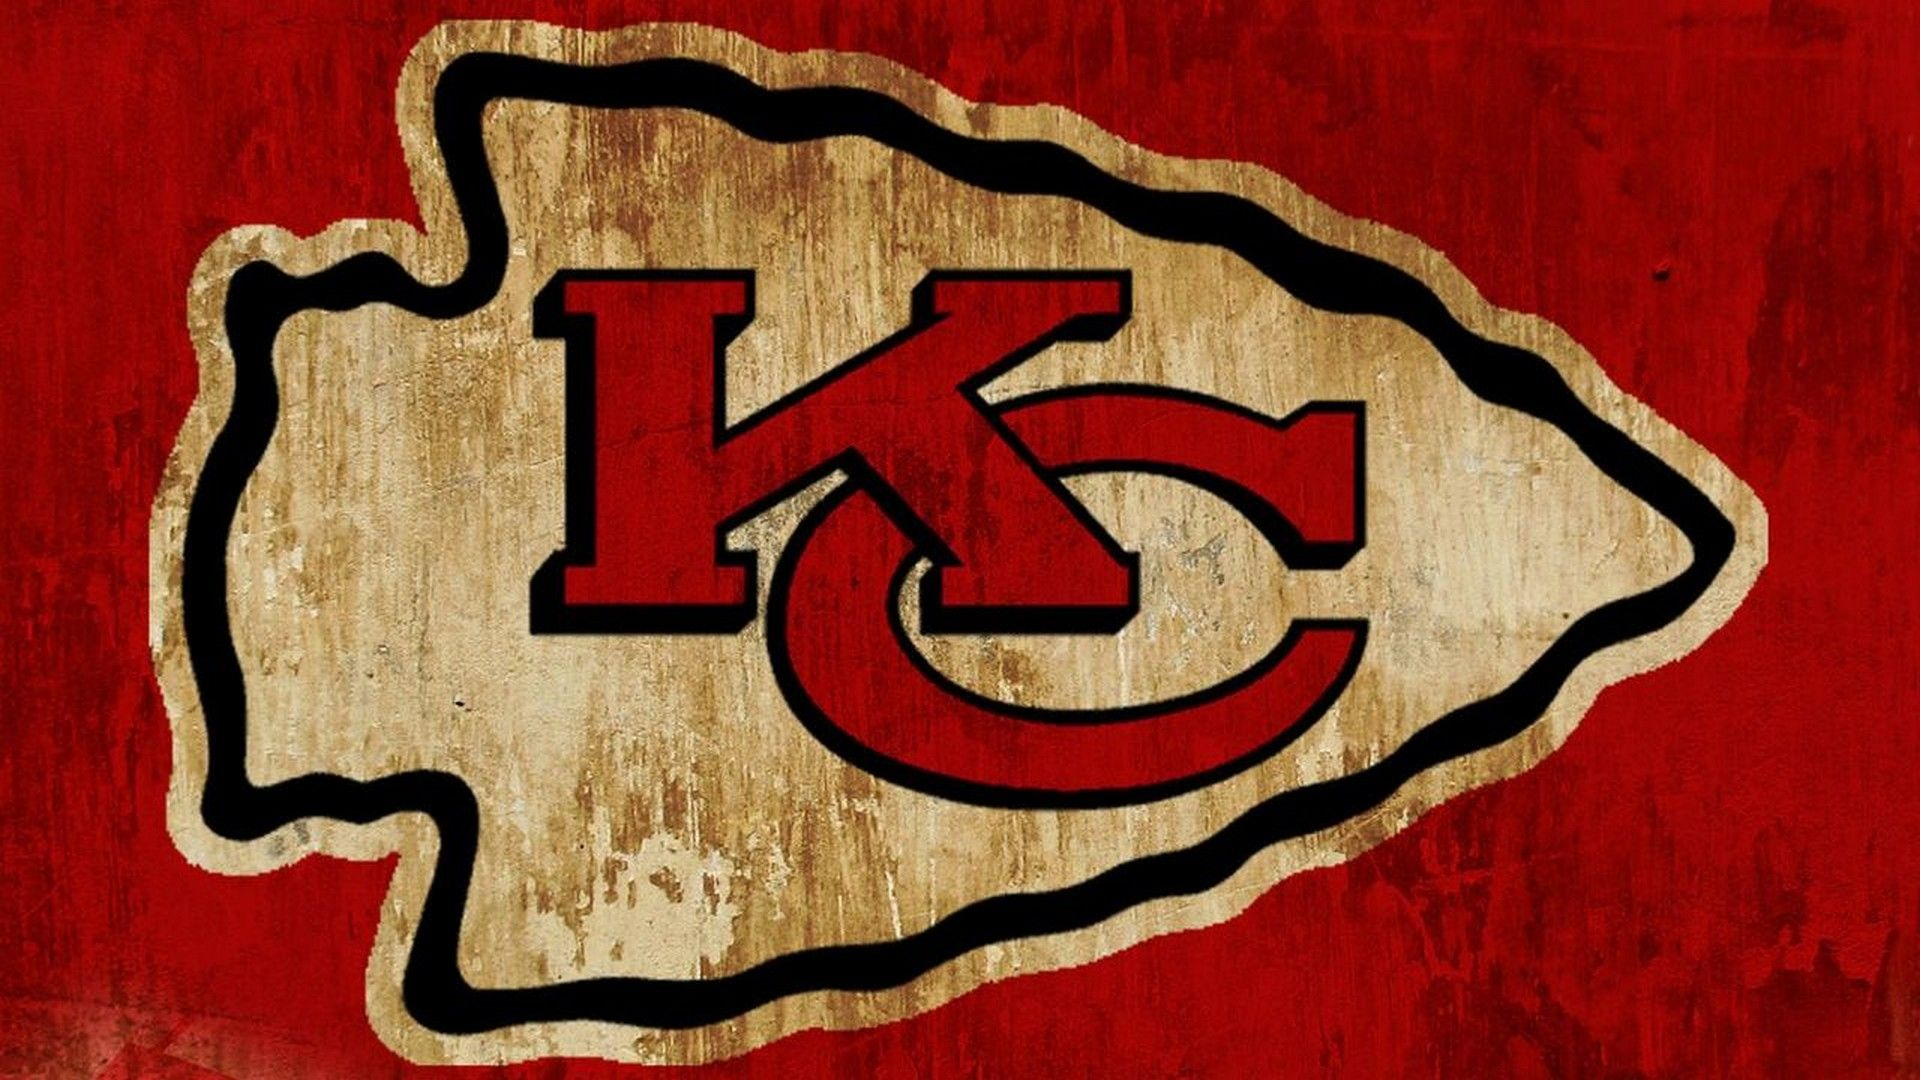 Kansas City Chiefs Wallpaper Hd 2020 Nfl Football Wallpapers Chiefs Wallpaper Kansas City Chiefs Football Kansas City Chiefs